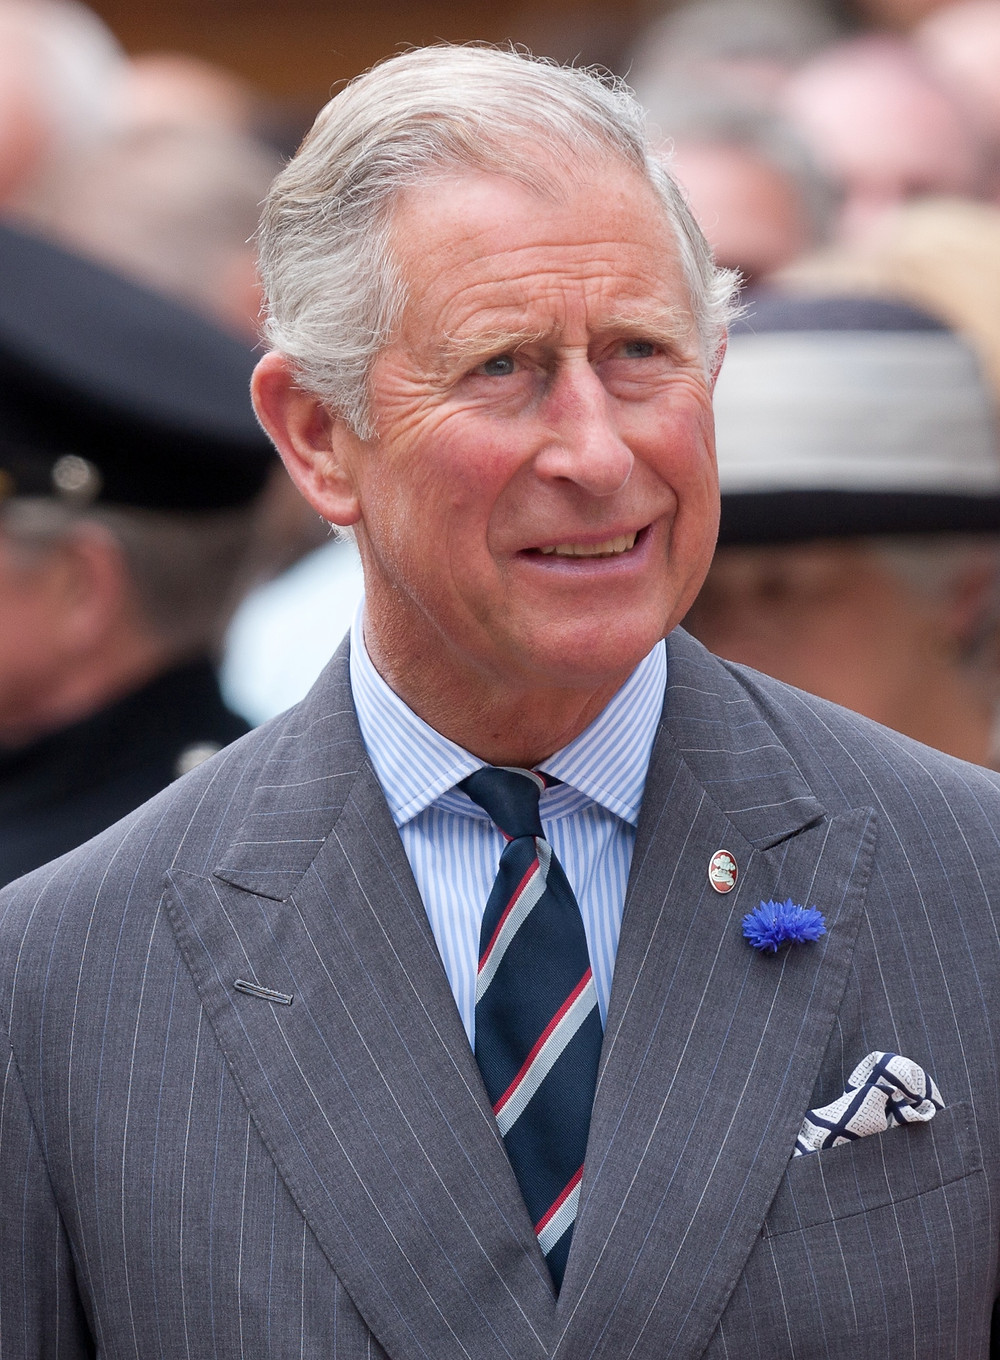 Prince Charles, the Prince of Wales, eldest son of Queen Elizabeth II & Prince Philip